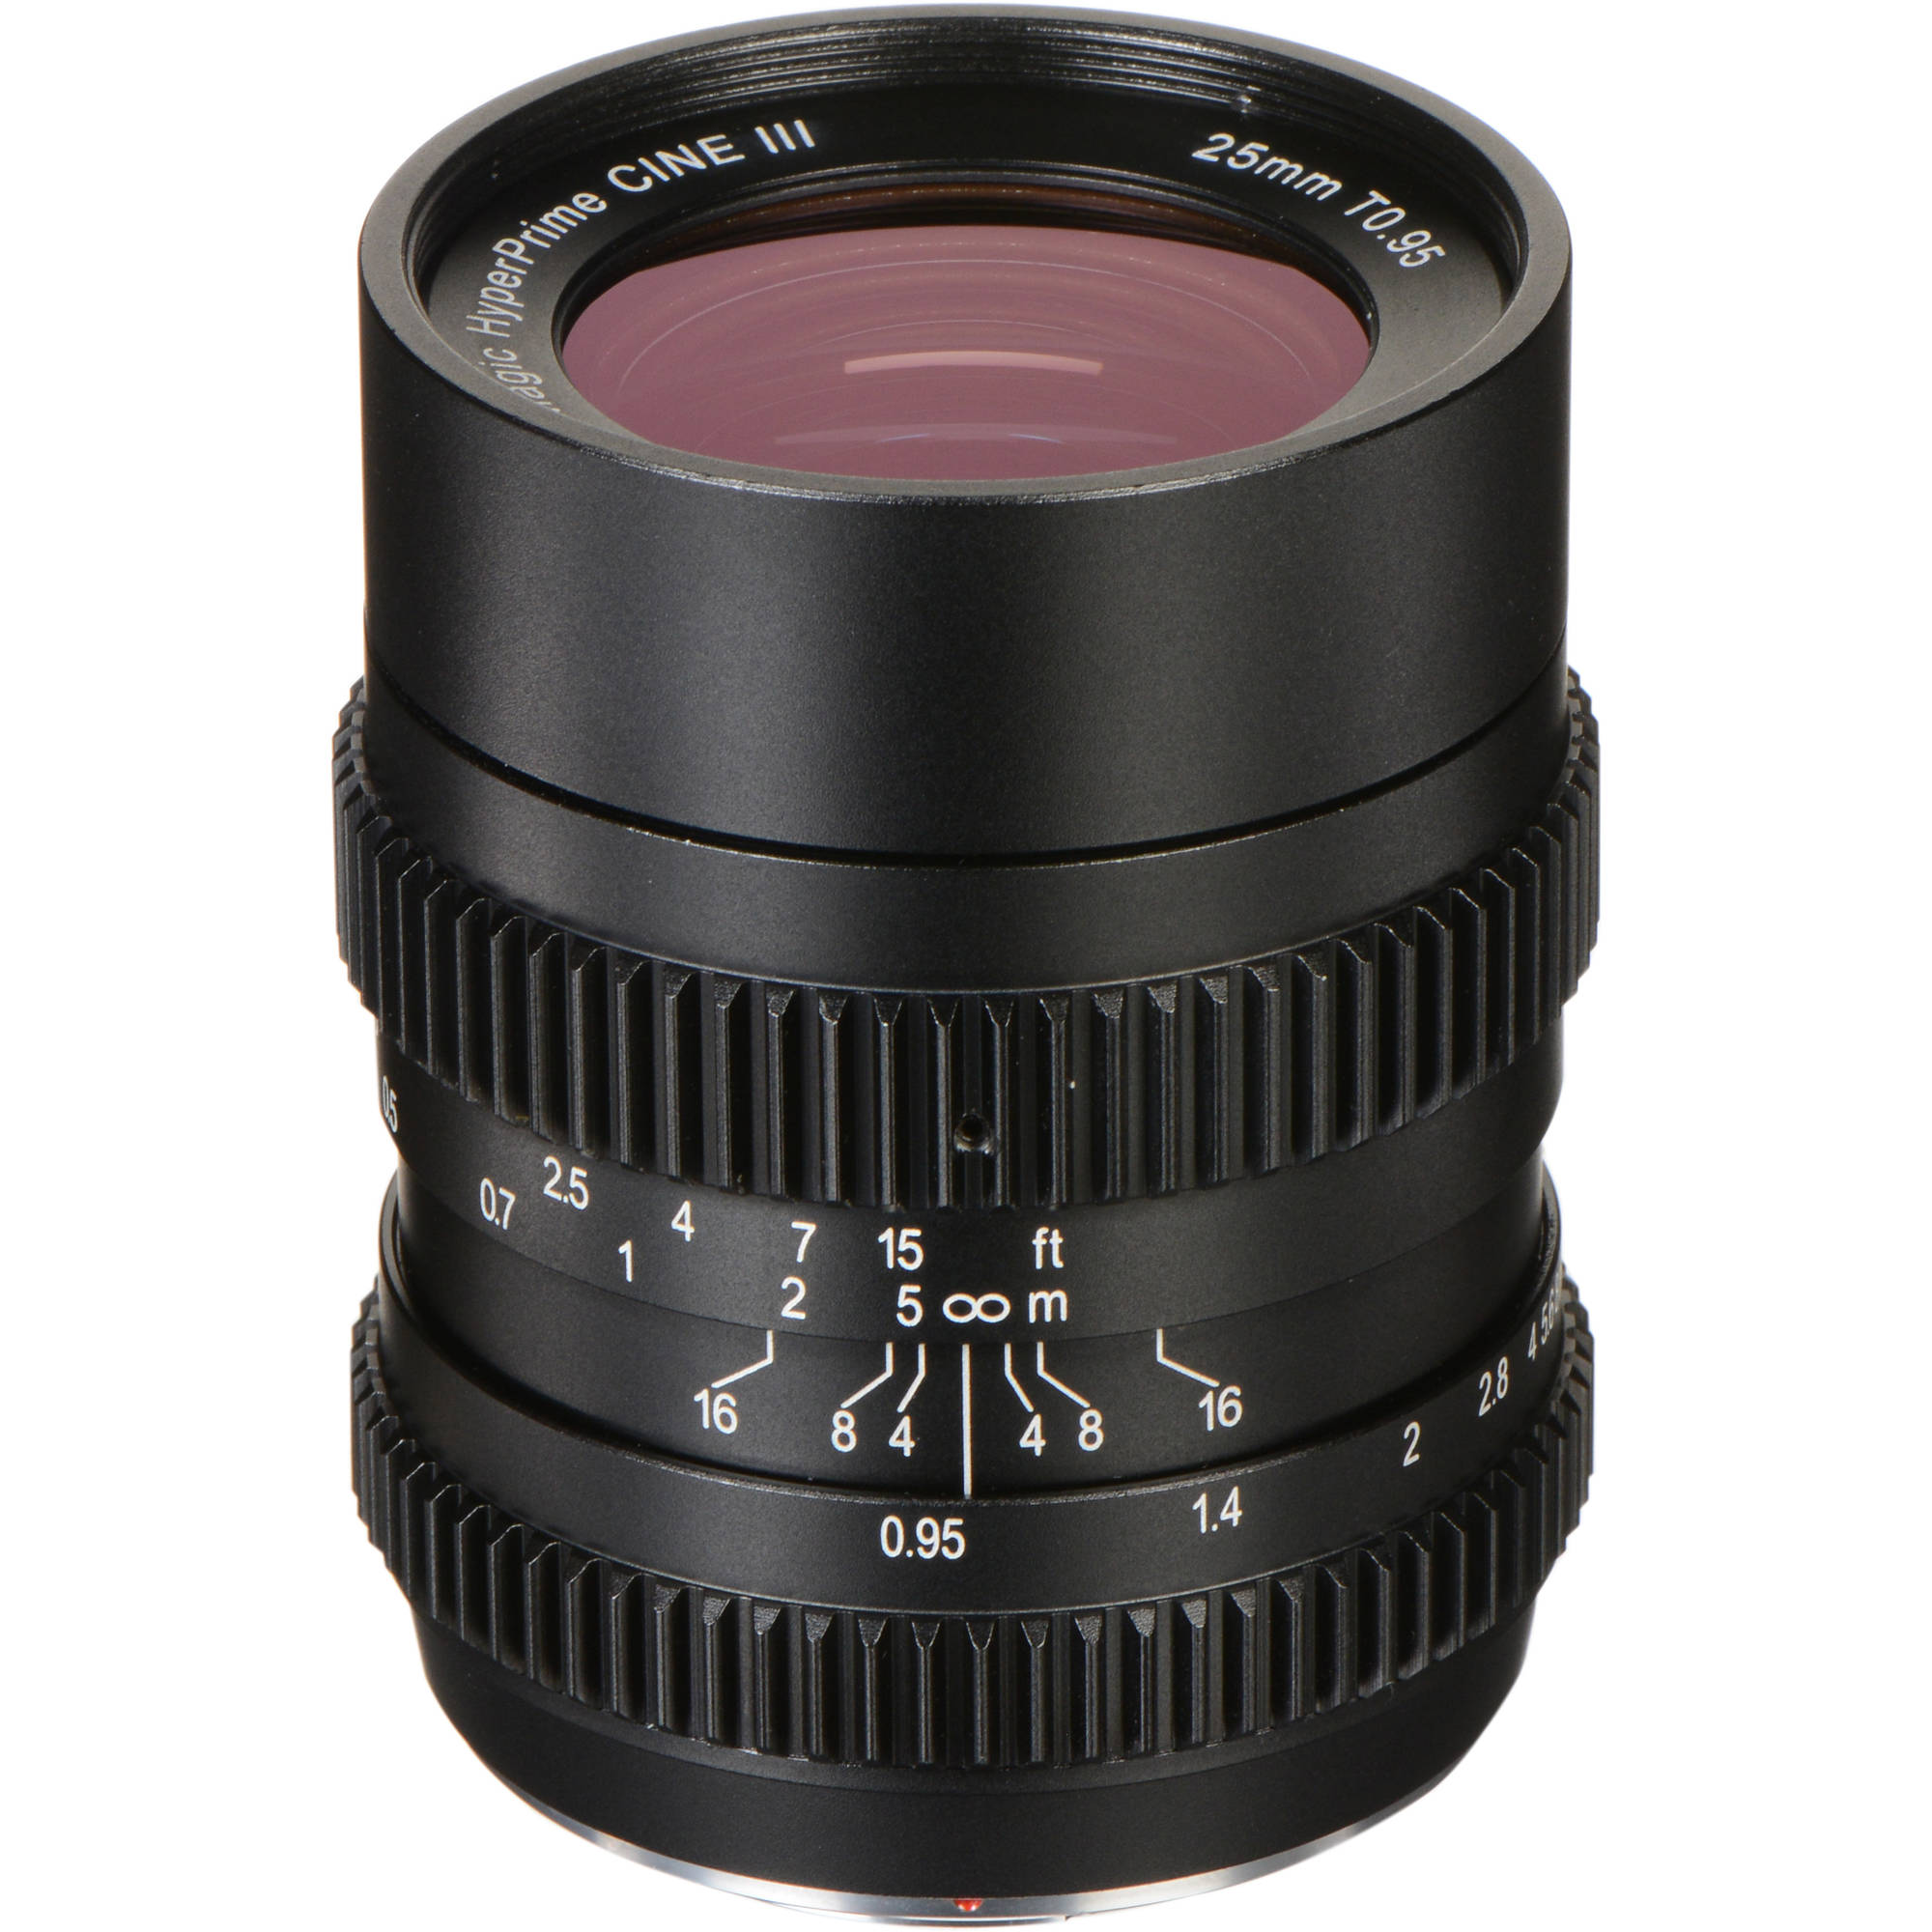 SLR Magic 25mm T0.95 HyperPrime Cine III Lens (MFT Mount)